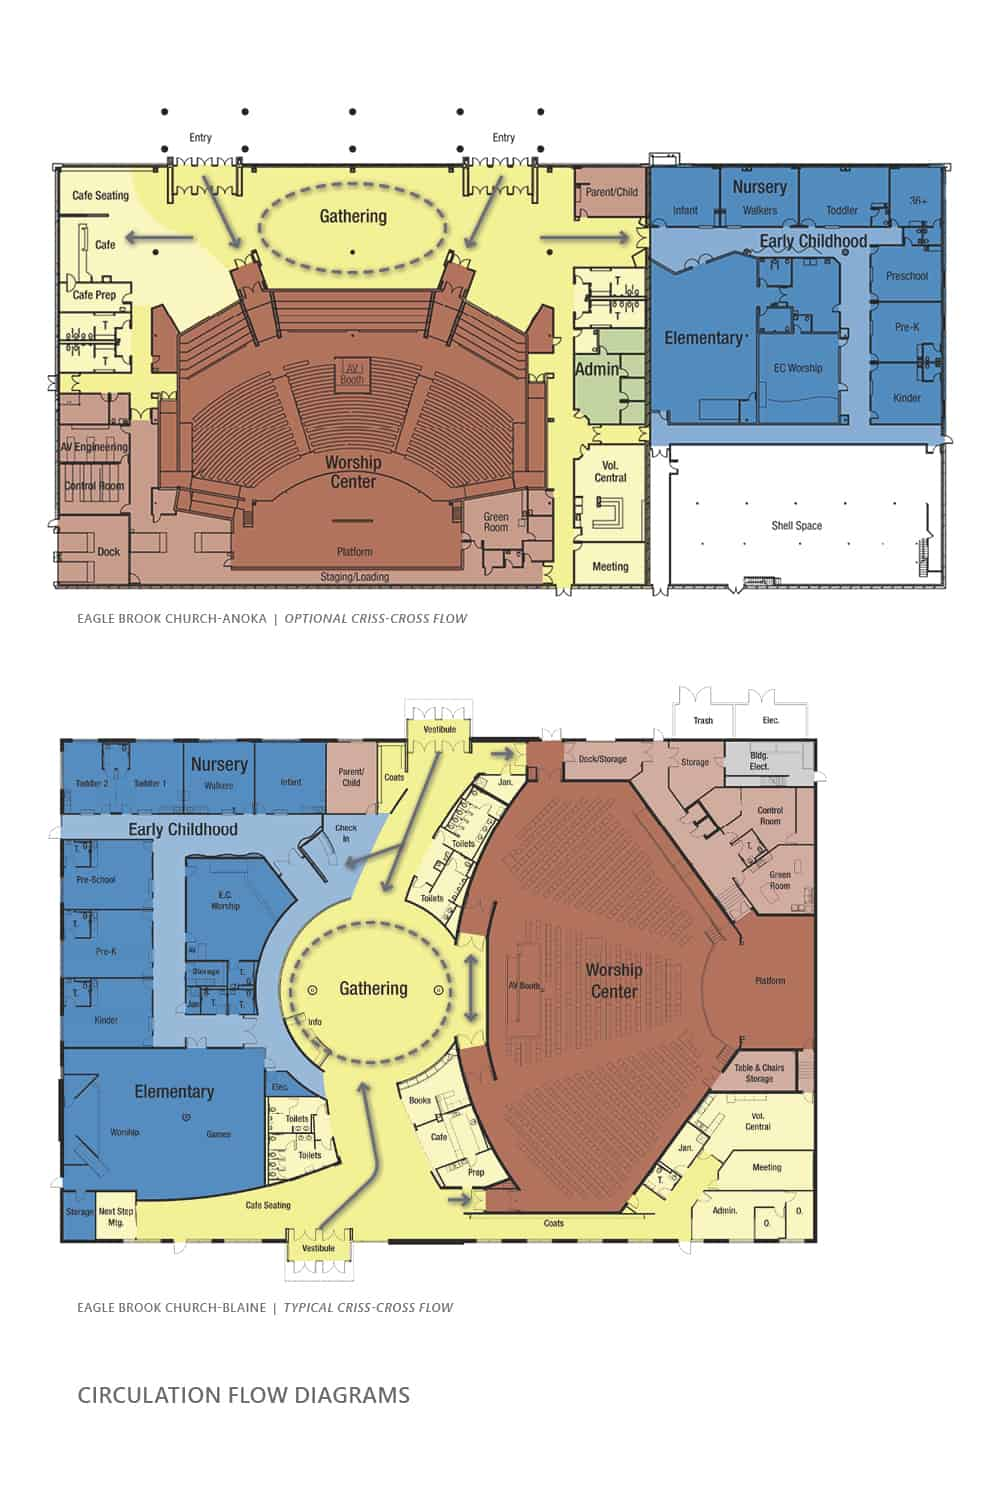 Floor plan comparisons showing the difference in circulation cross-flows between EBC Anoka and Blaine.